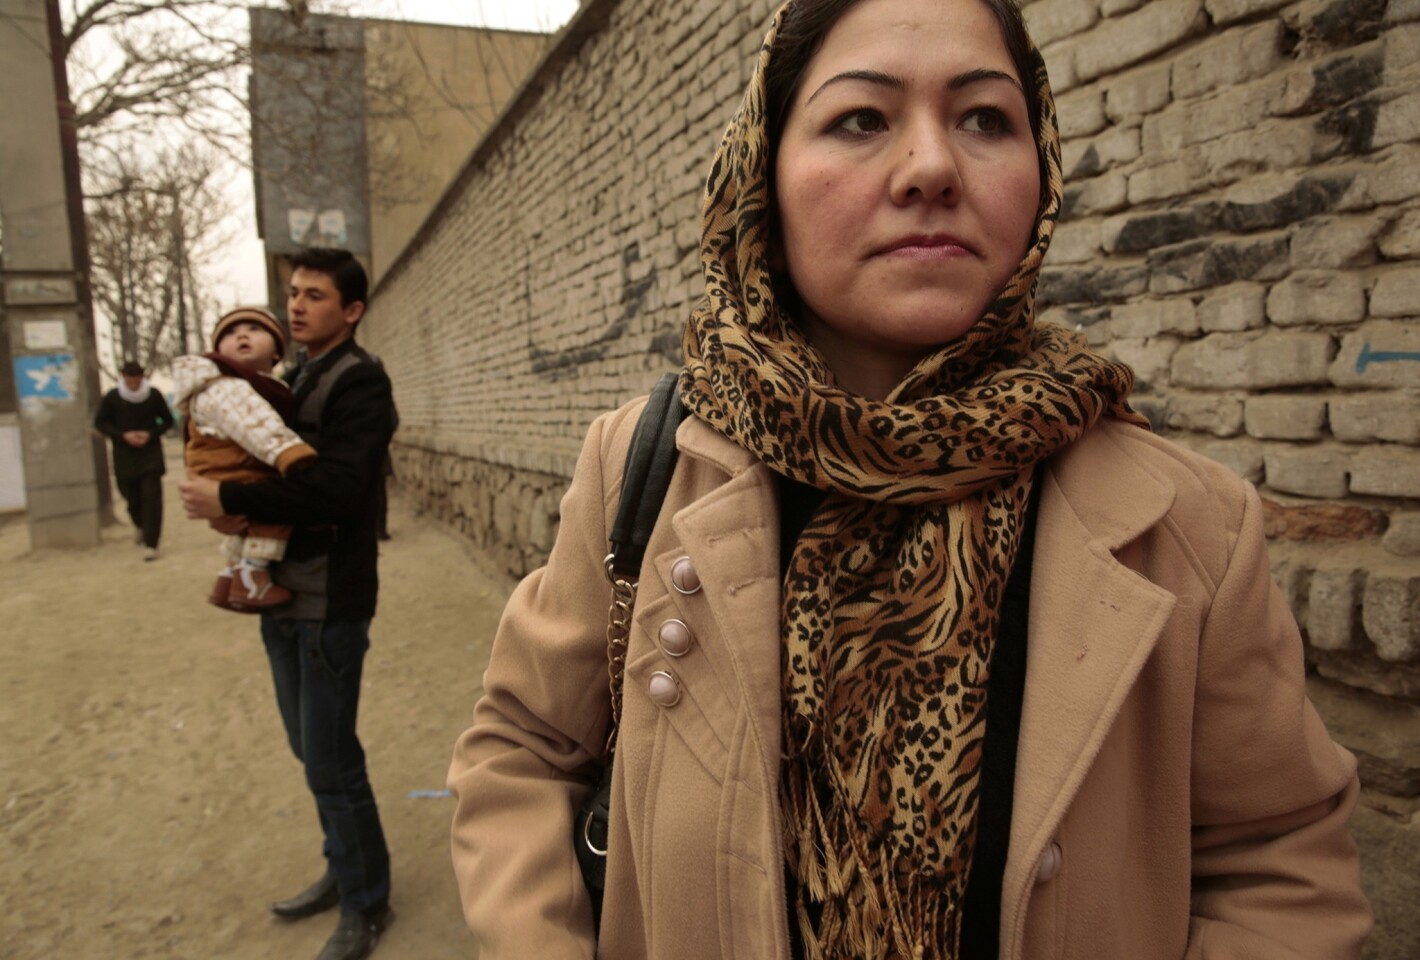 """Ghazalan Koofi, 26, waits for a ride to work as her brother-in-law Shafiq Azizi holds her baby, Ahmad, 11 months. Despite growing up under Taliban rule, Koofi was able to graduate from high school, and is now studying literature in college. But with U.S. combat troops leaving Afghanistan next year, Koofi and other Afghan women worry that their freedoms will begin to erode. """"We are entering a very dangerous period for women,"""" Koofi says."""